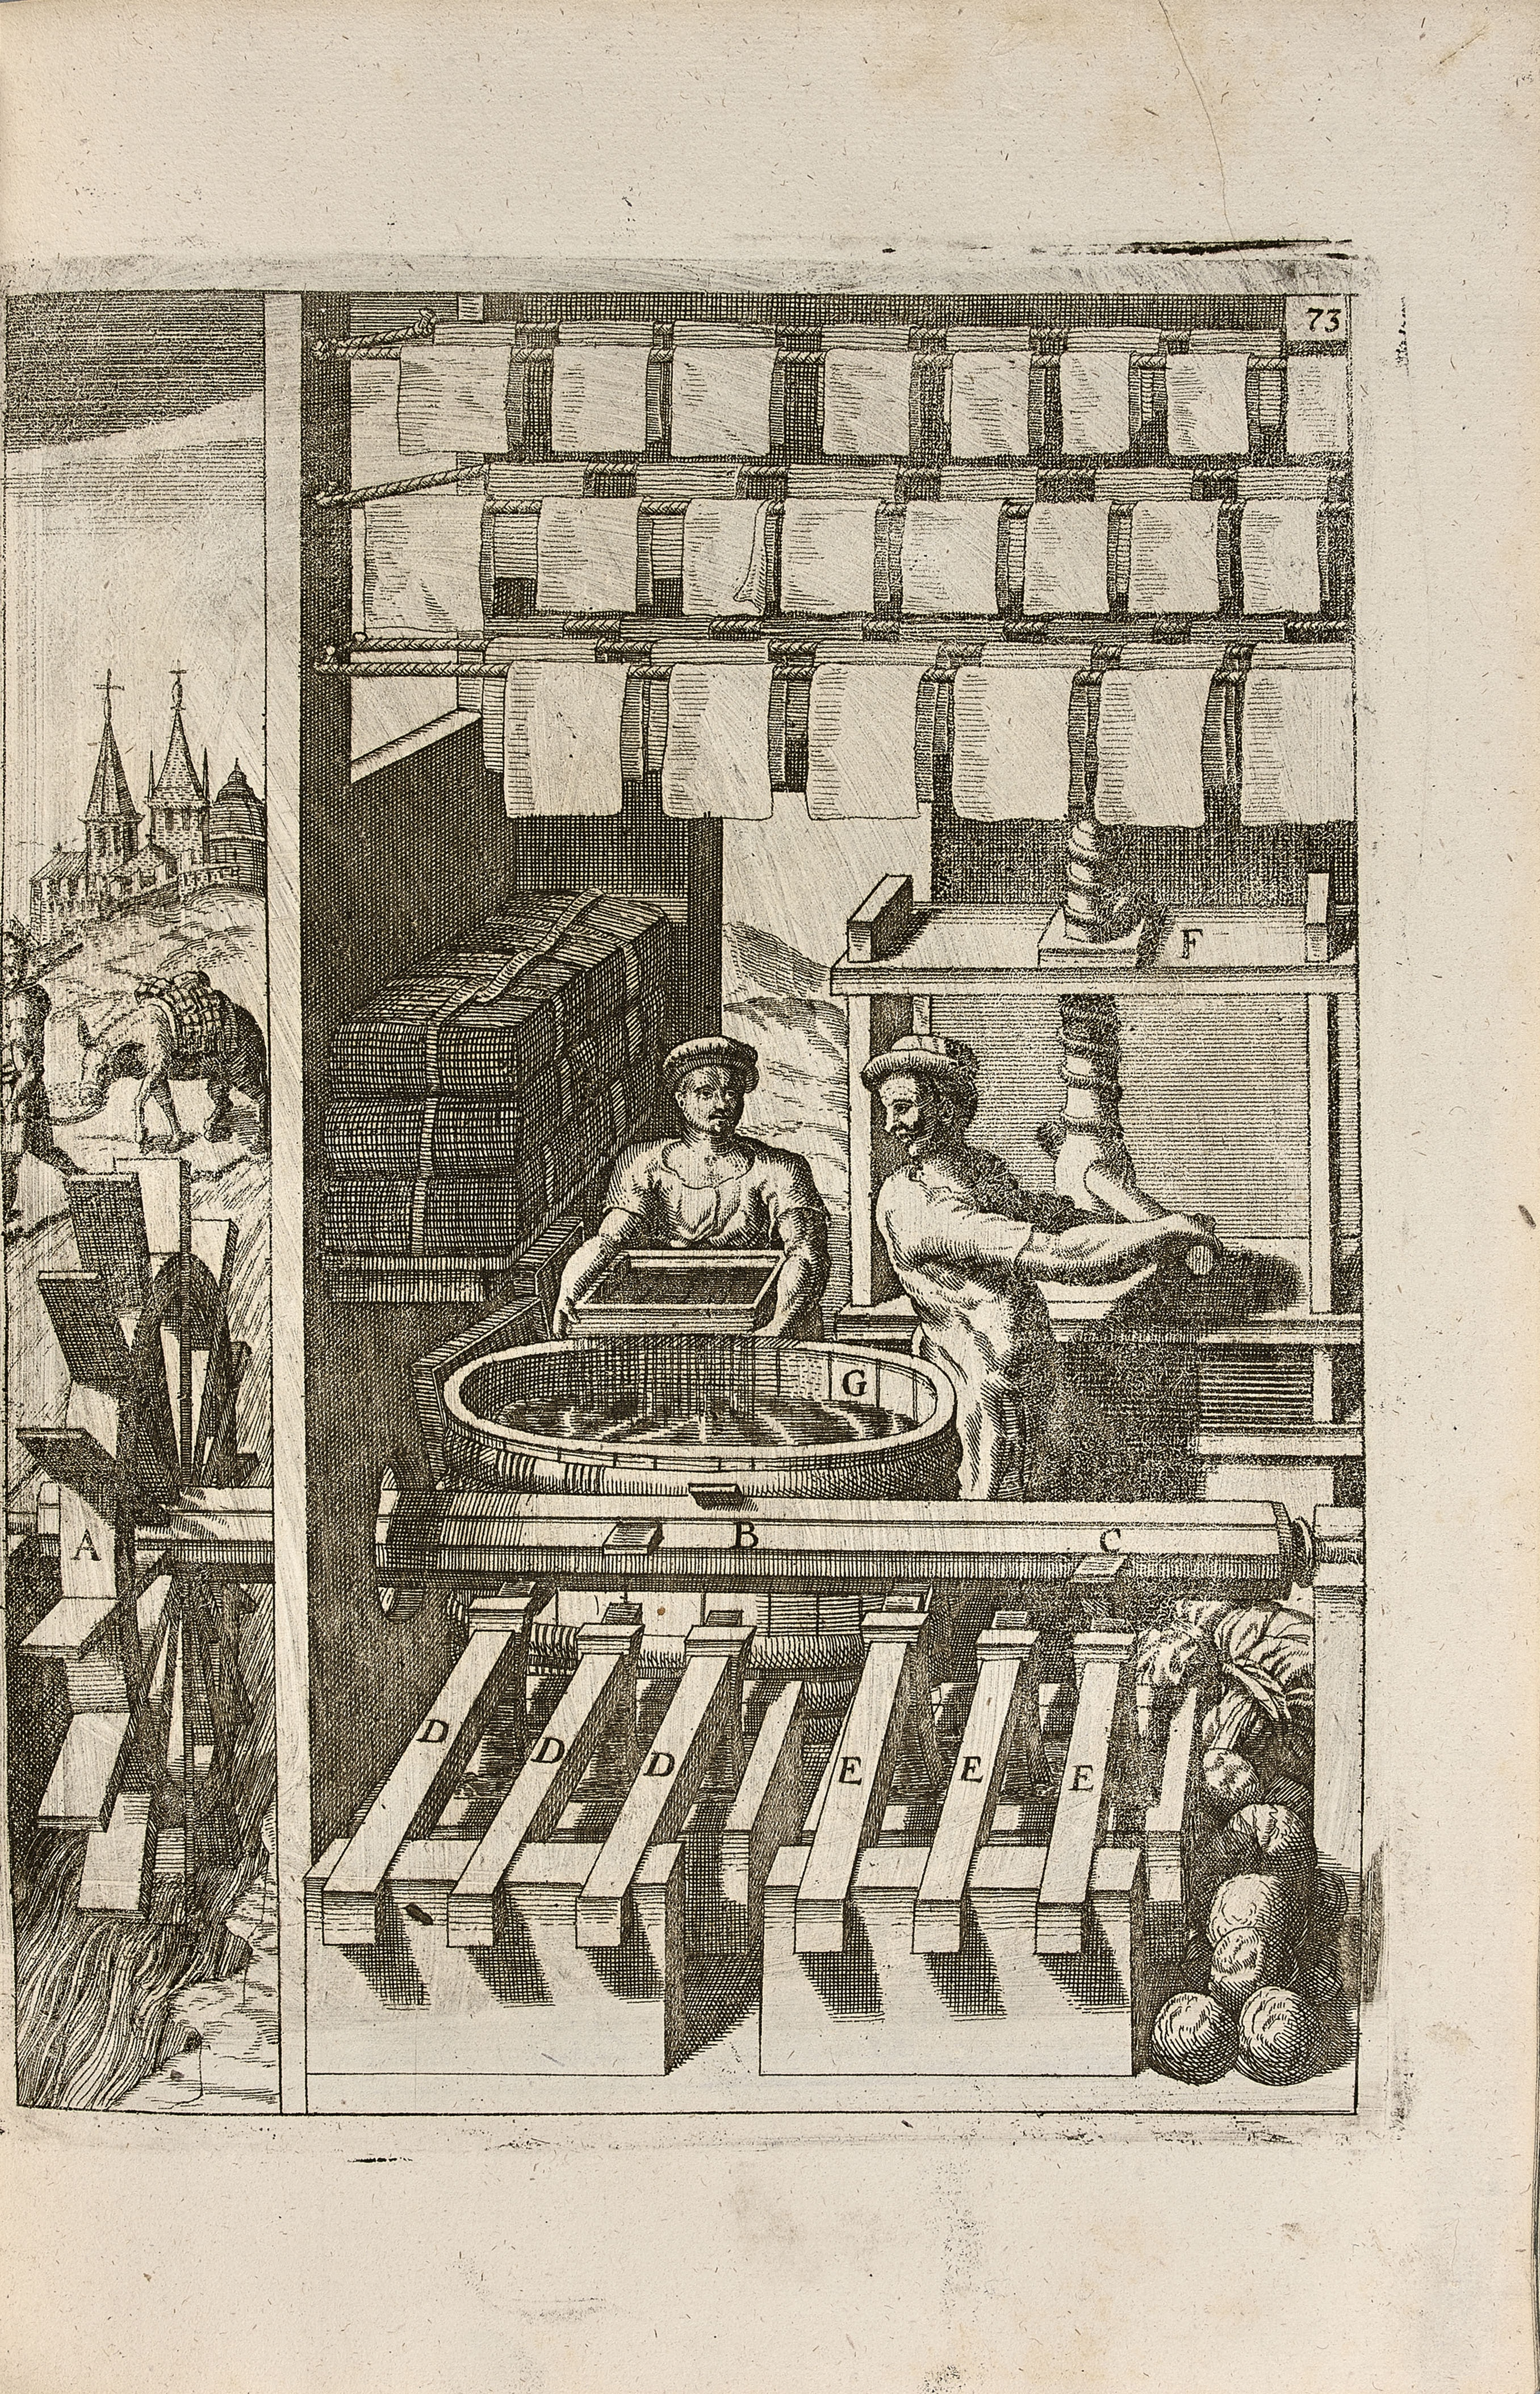 BOECKLER-Theatrum-machinarum-novum-First-edition-of-the-two-great-Baroque-works-illustrated-with-385-superb-and-interesting-engravings-about-machines-